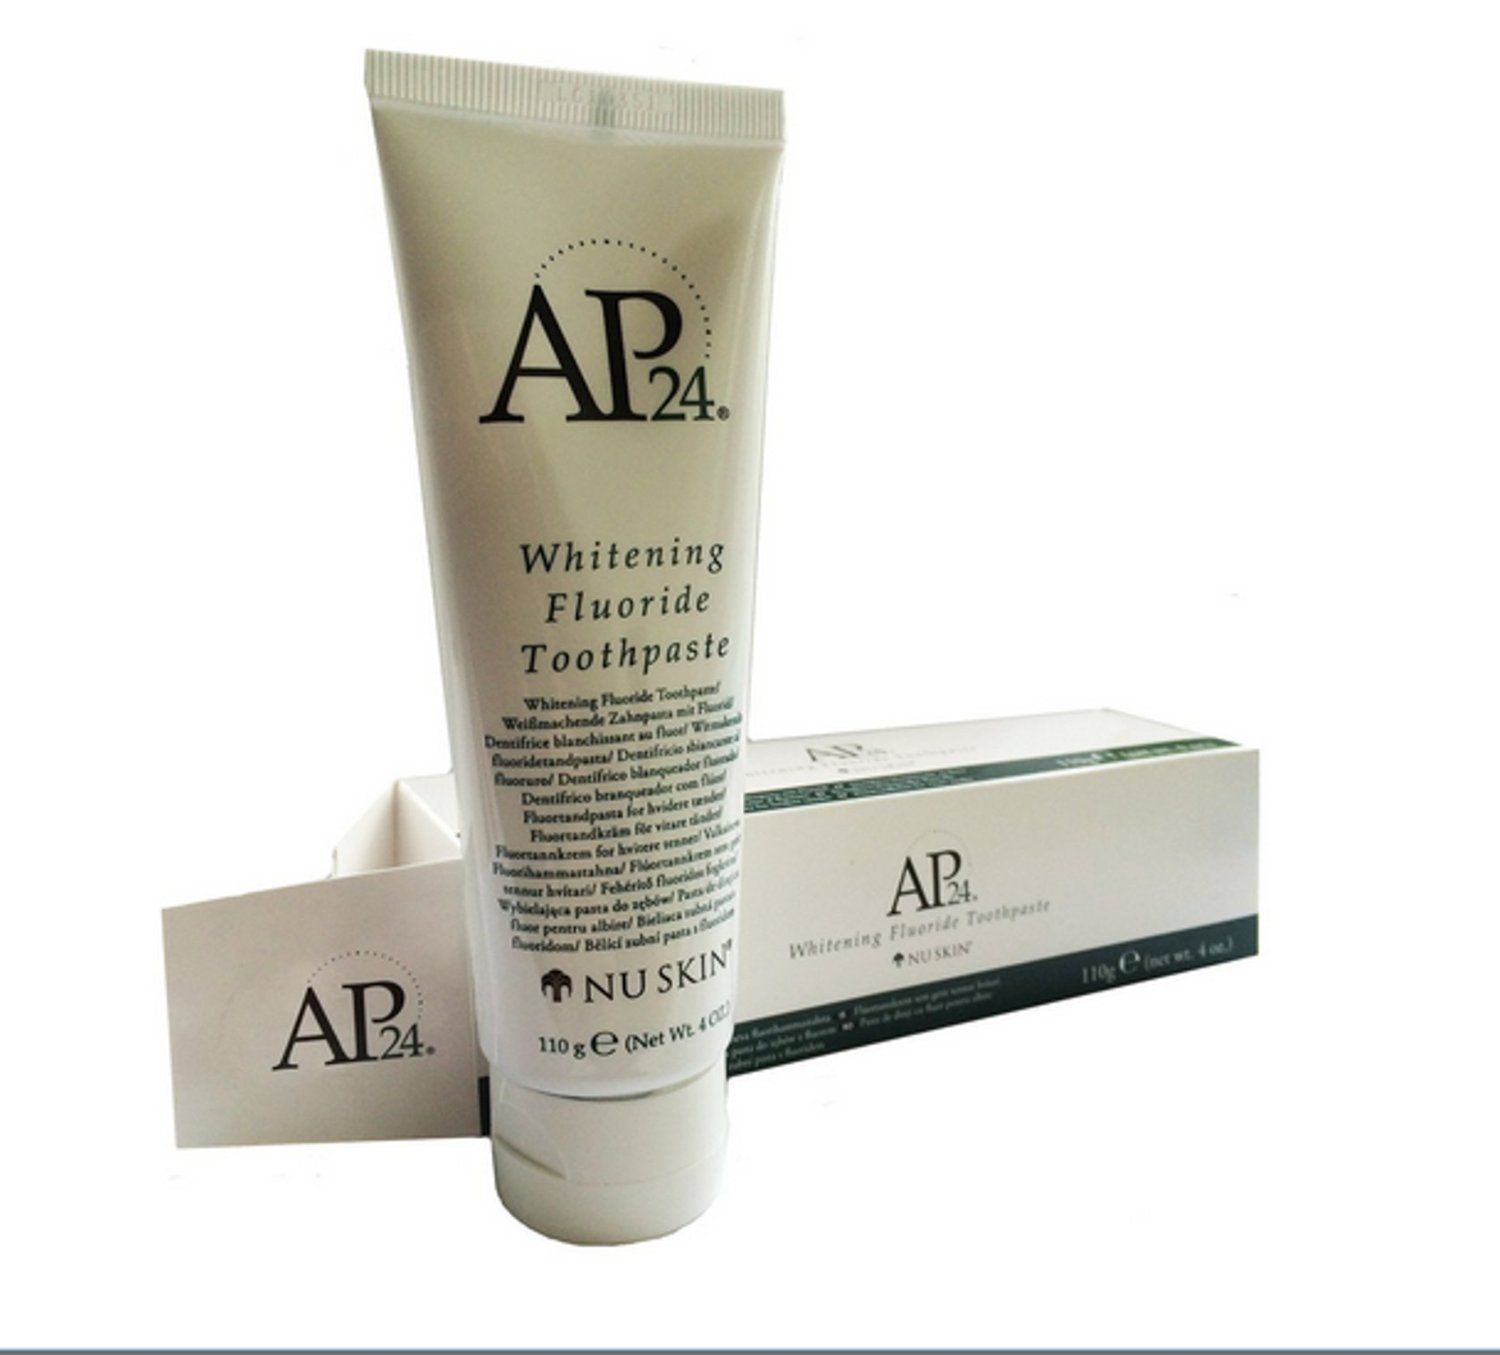 Ap24 whitening fluoride toothpaste brightens and whitens